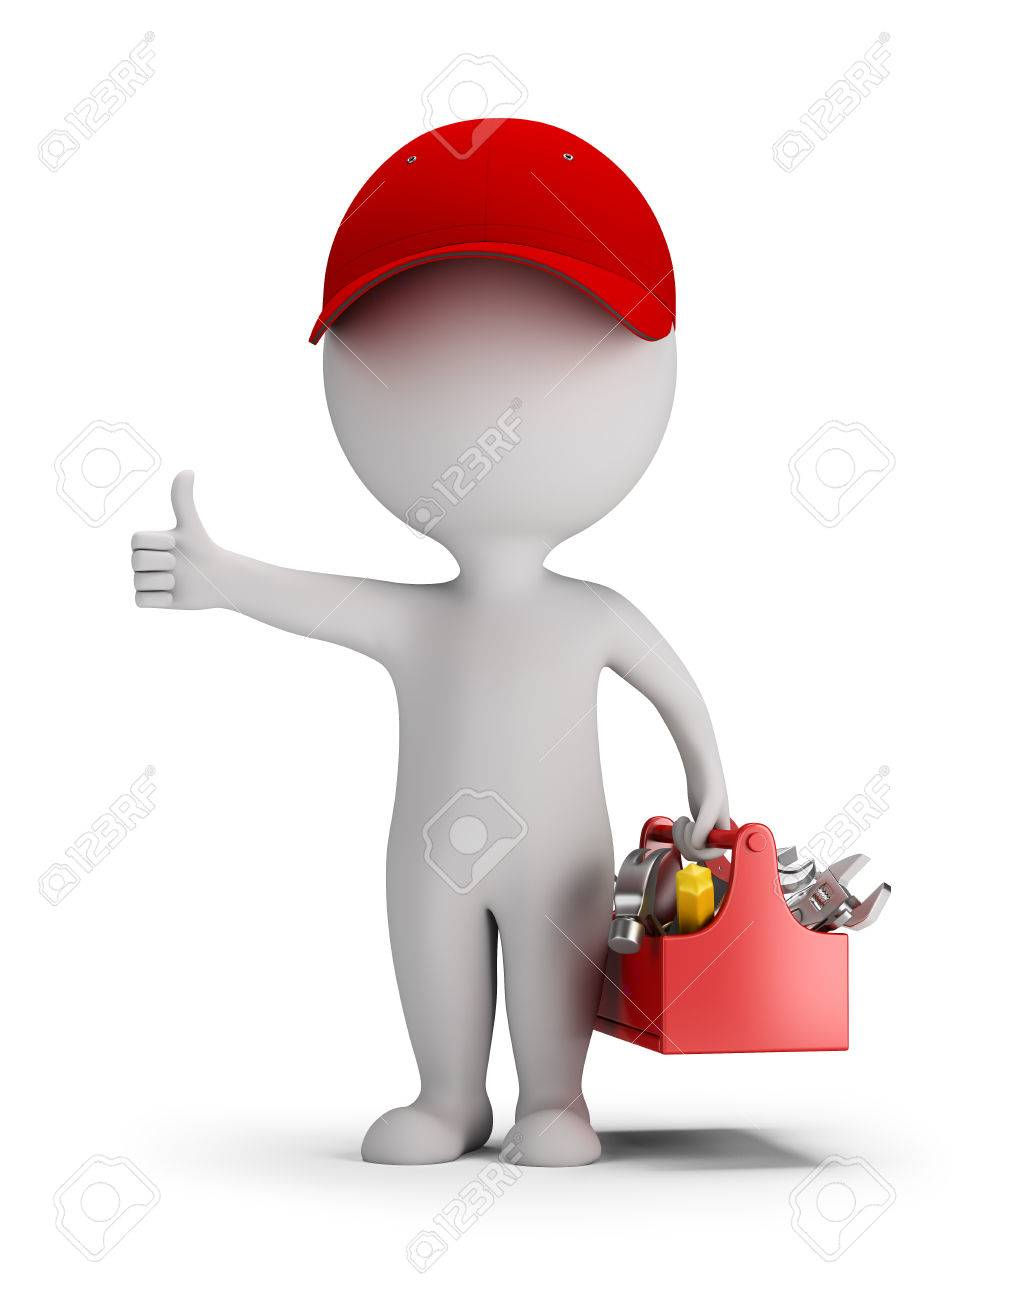 3d small person - mechanic with tool box. Thumb up. 3d image. White background. - 56414195